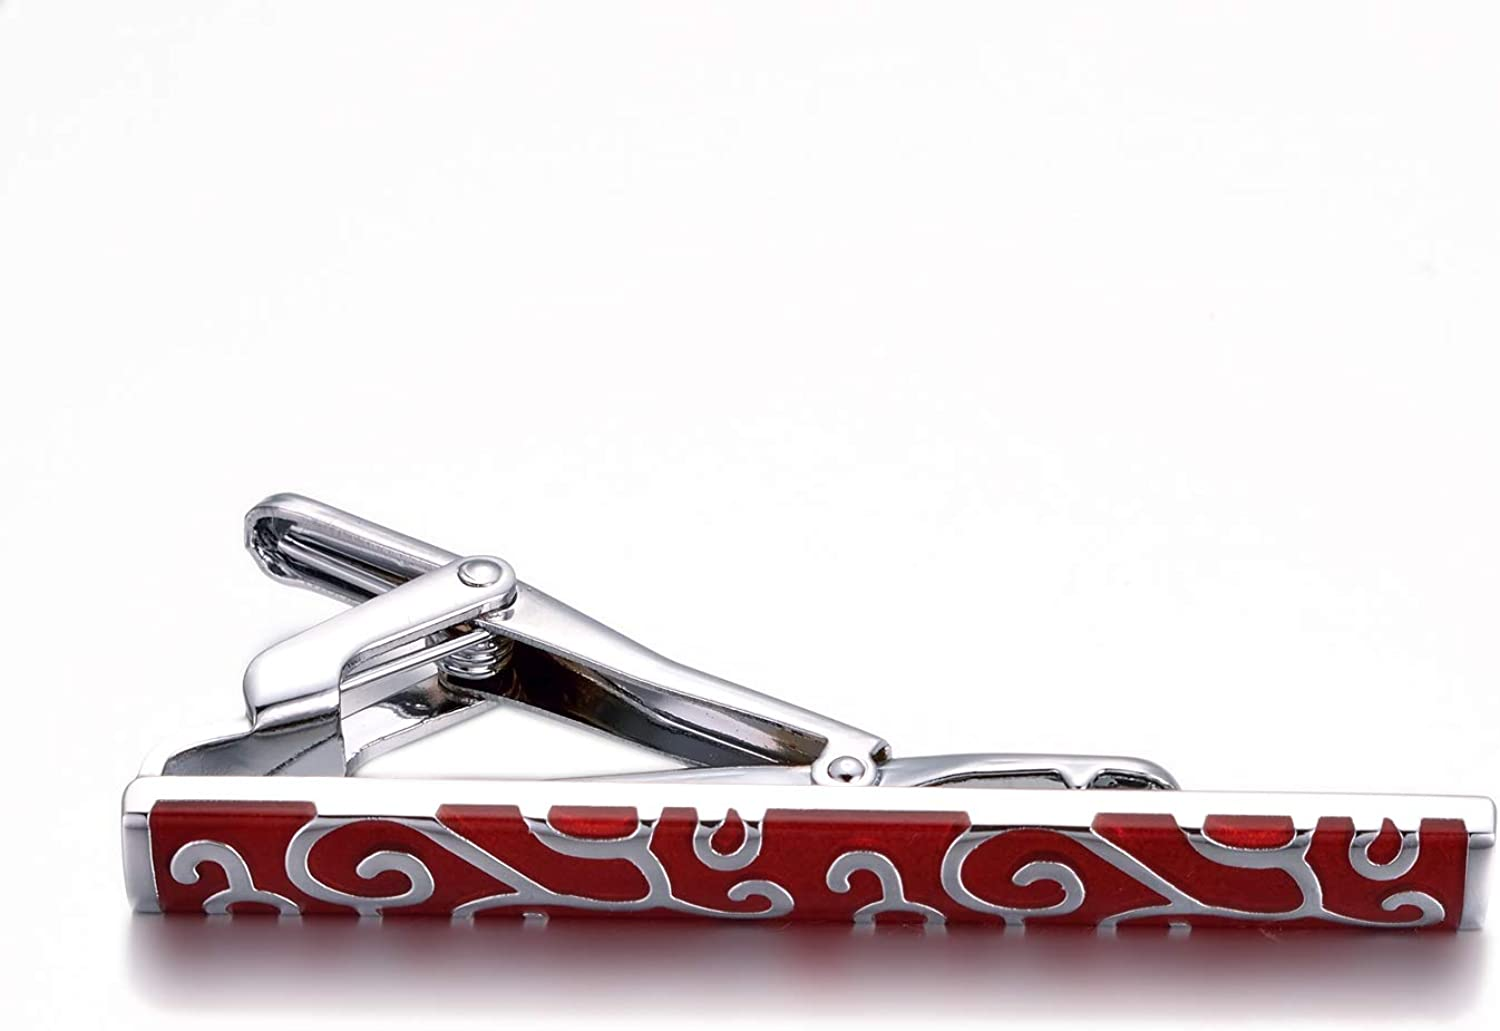 Yousfs Silver Tie Clip Red Abstract Mens Dragon Phoenix Grain Tie Clip Mens Formal Tie Clip Thin Noble Tie Clip Suitable for Important Places for Banquets and Dances